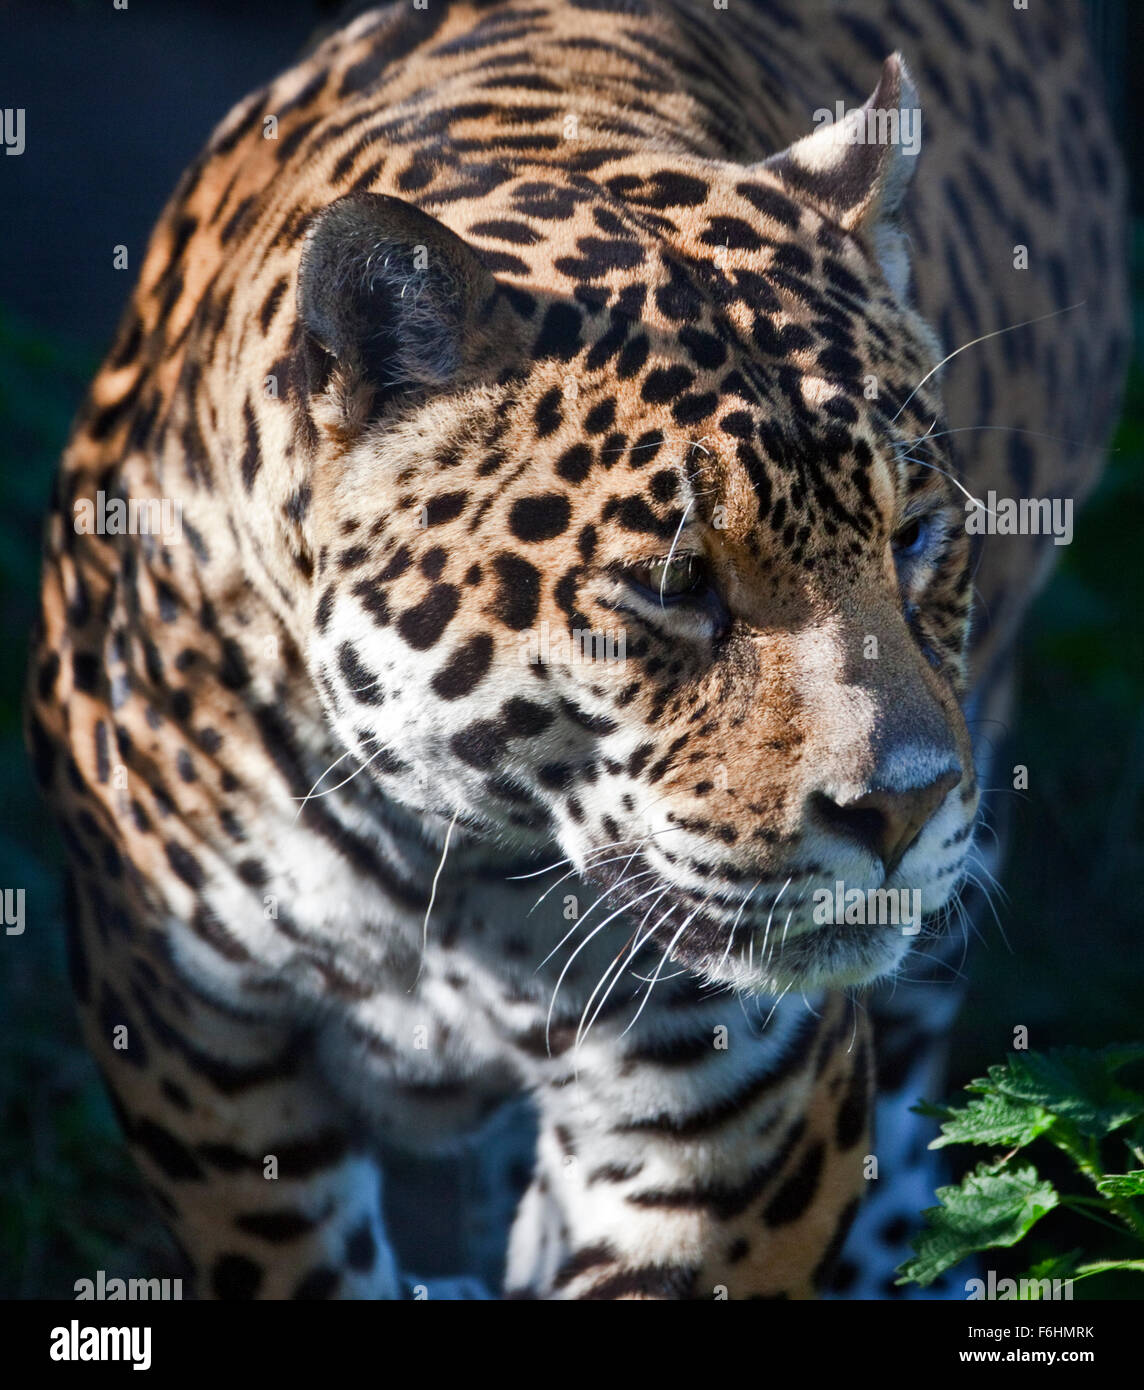 Jaguar (panthera onca) - Stock Image